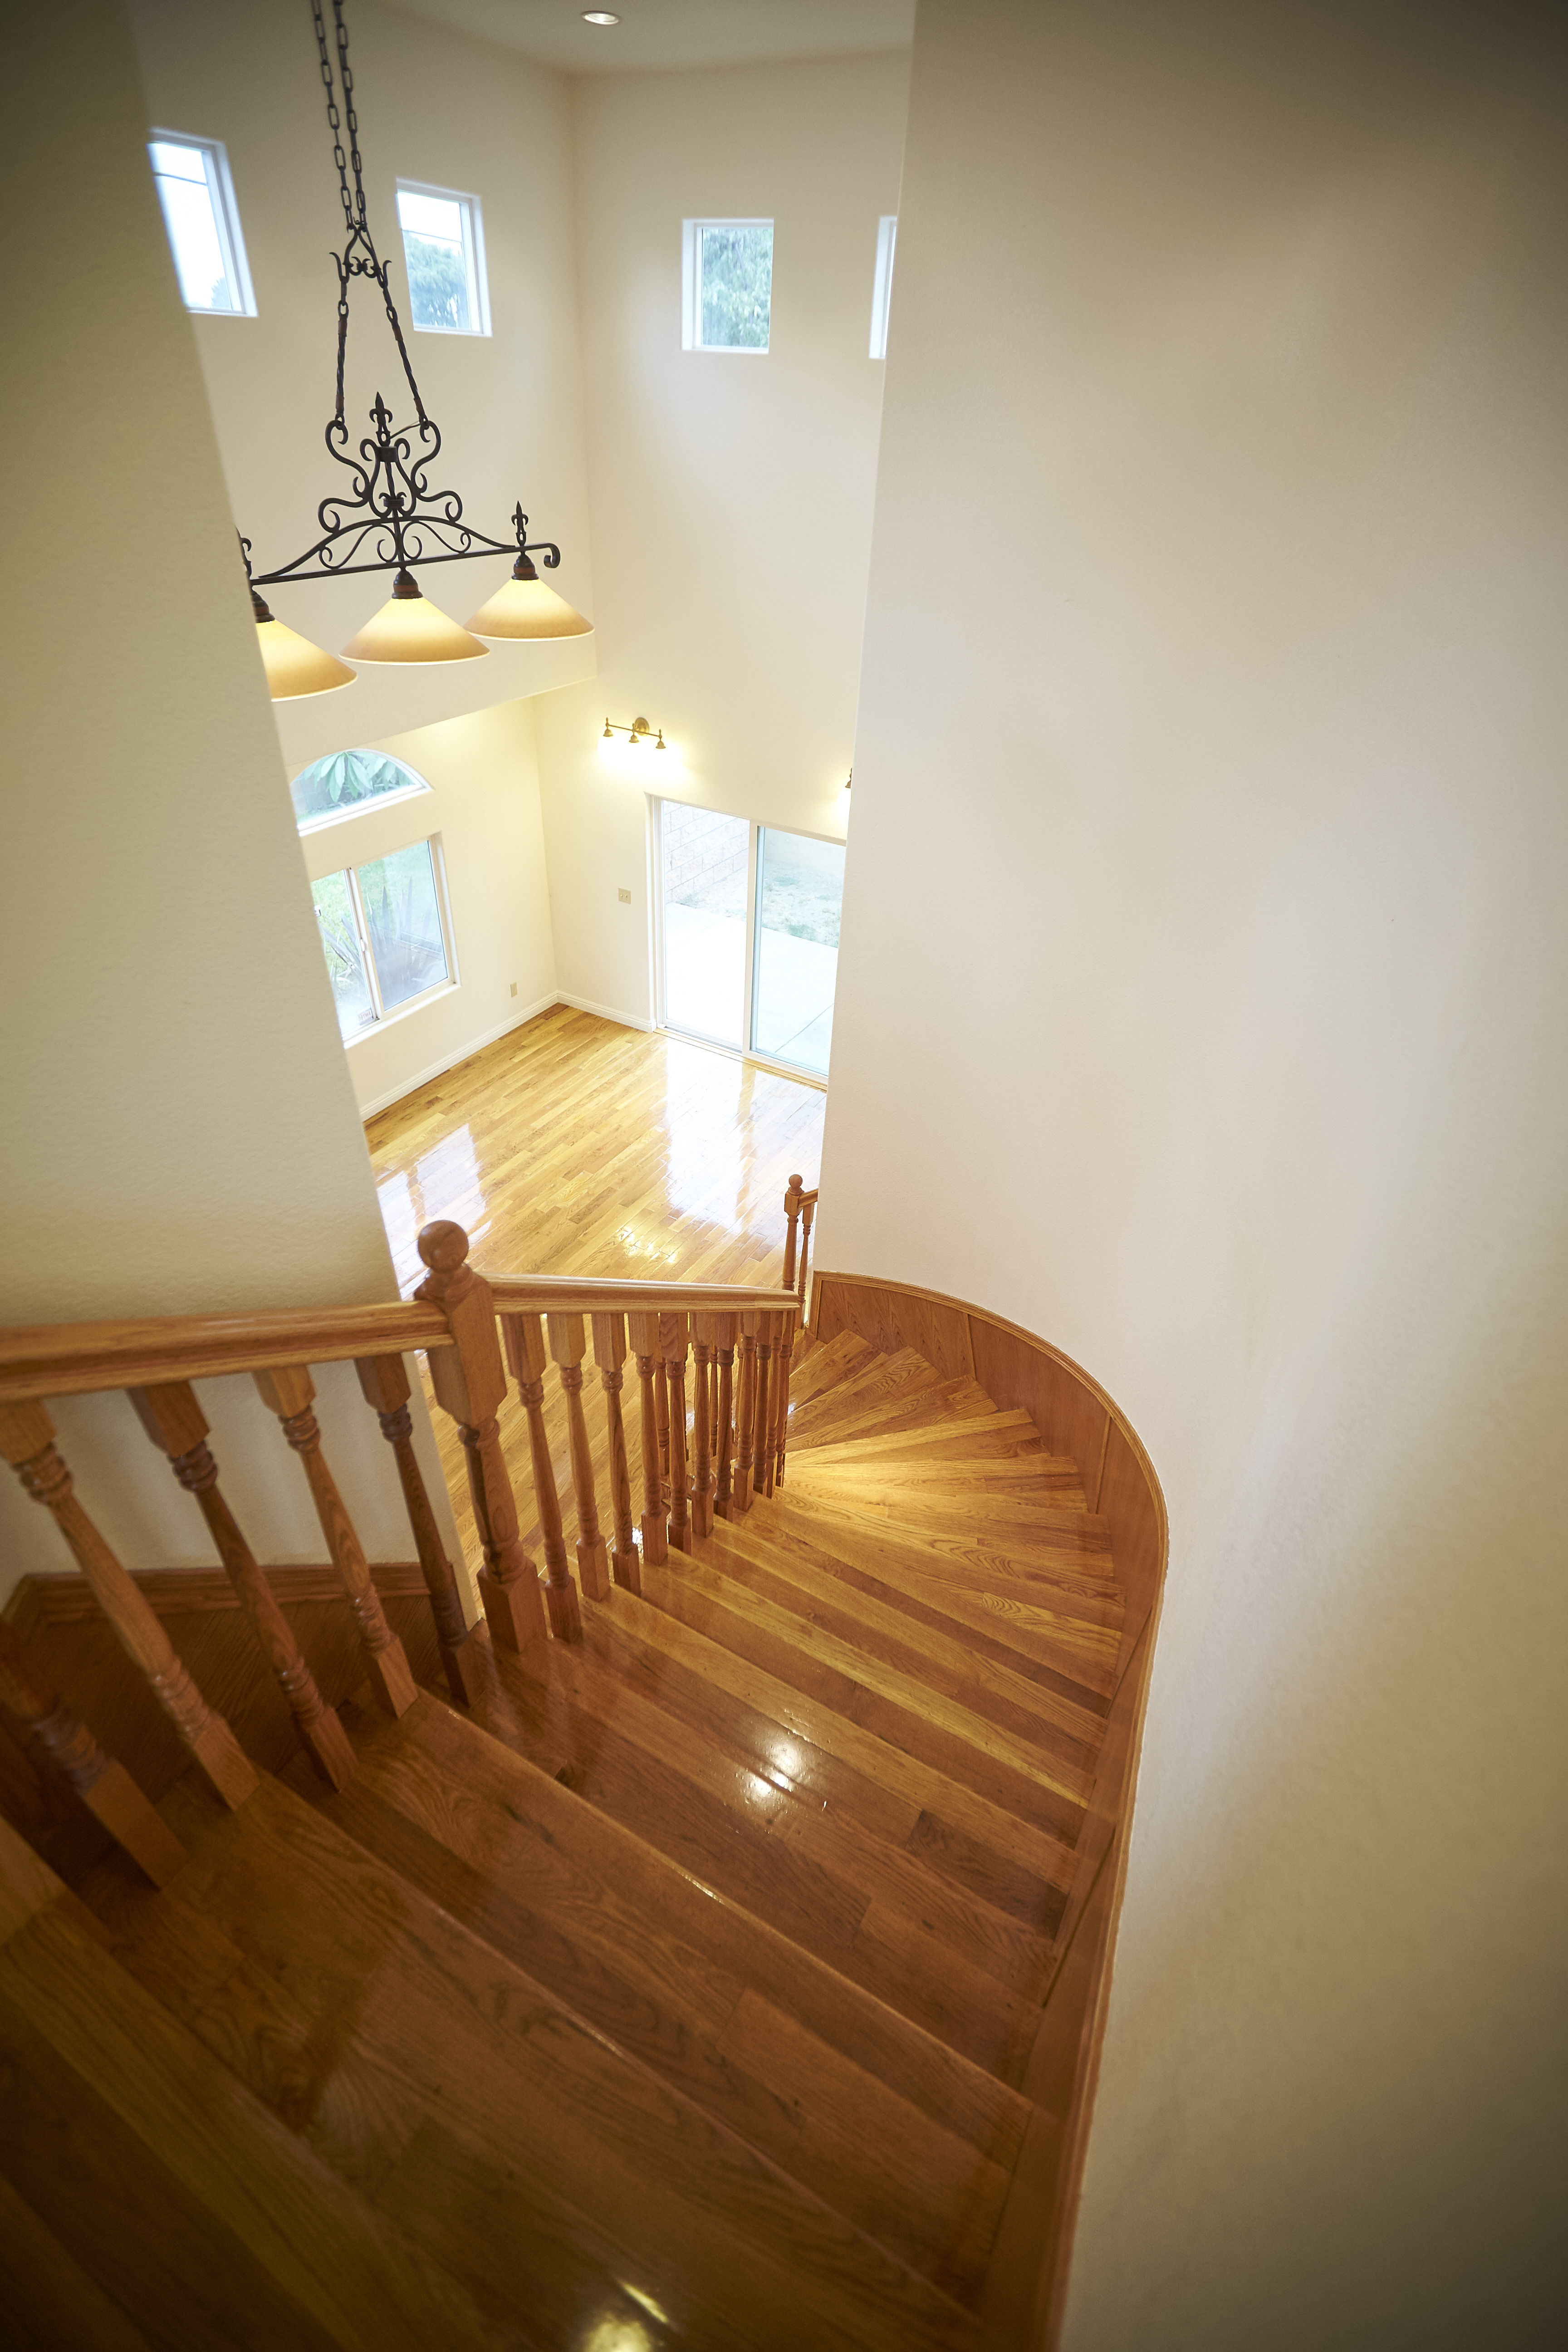 View from upstairs staircase